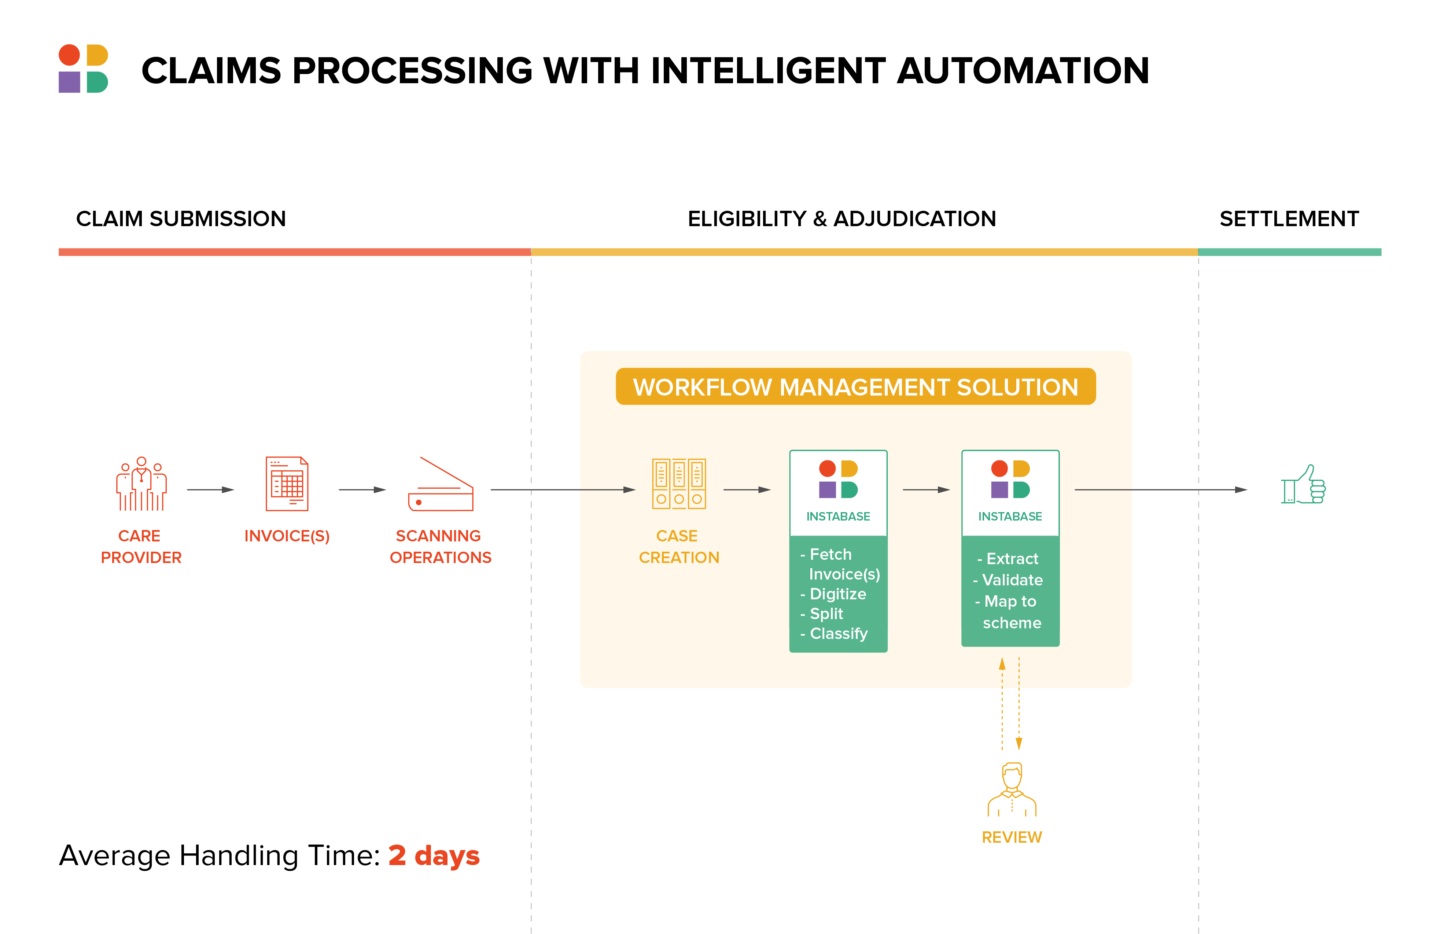 Claims Processing with intelligent automation